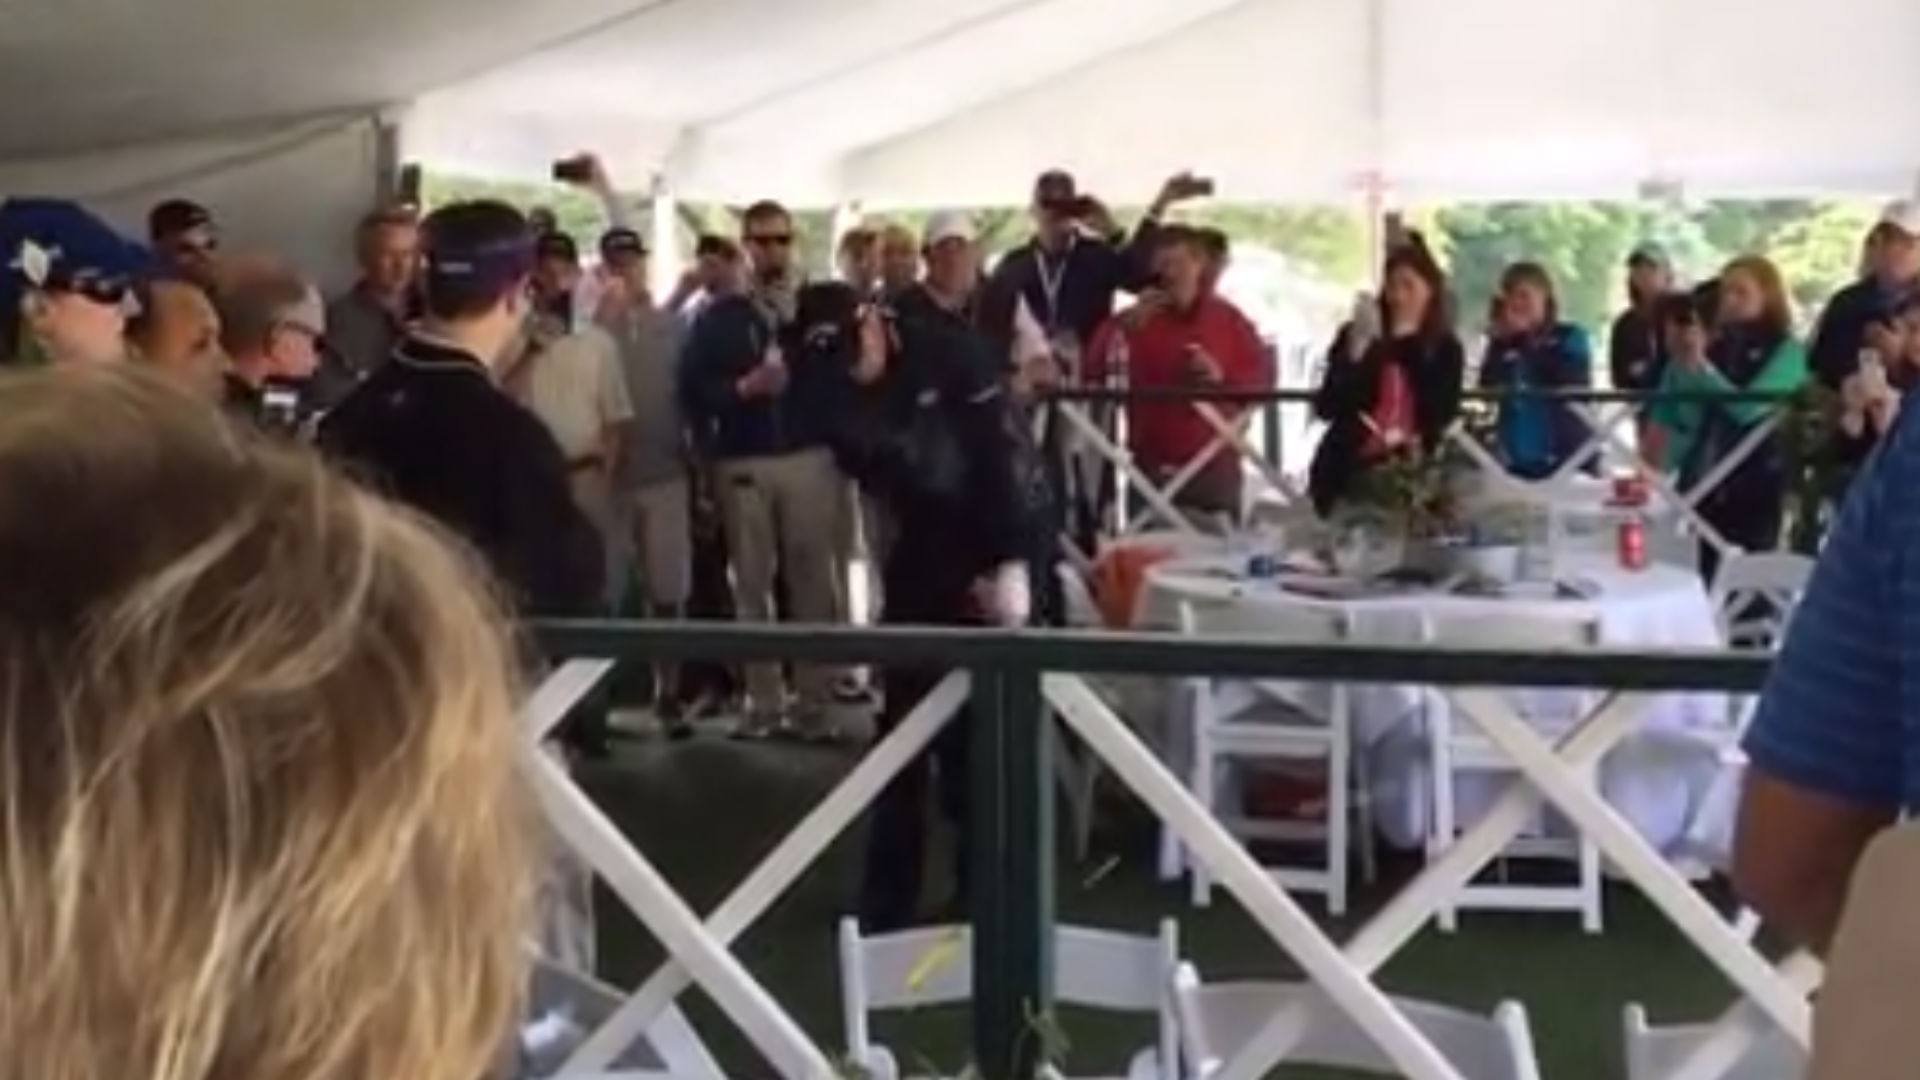 Golfer hits shot into hospitality tent at Wells Fargo Championship, somehow recovers